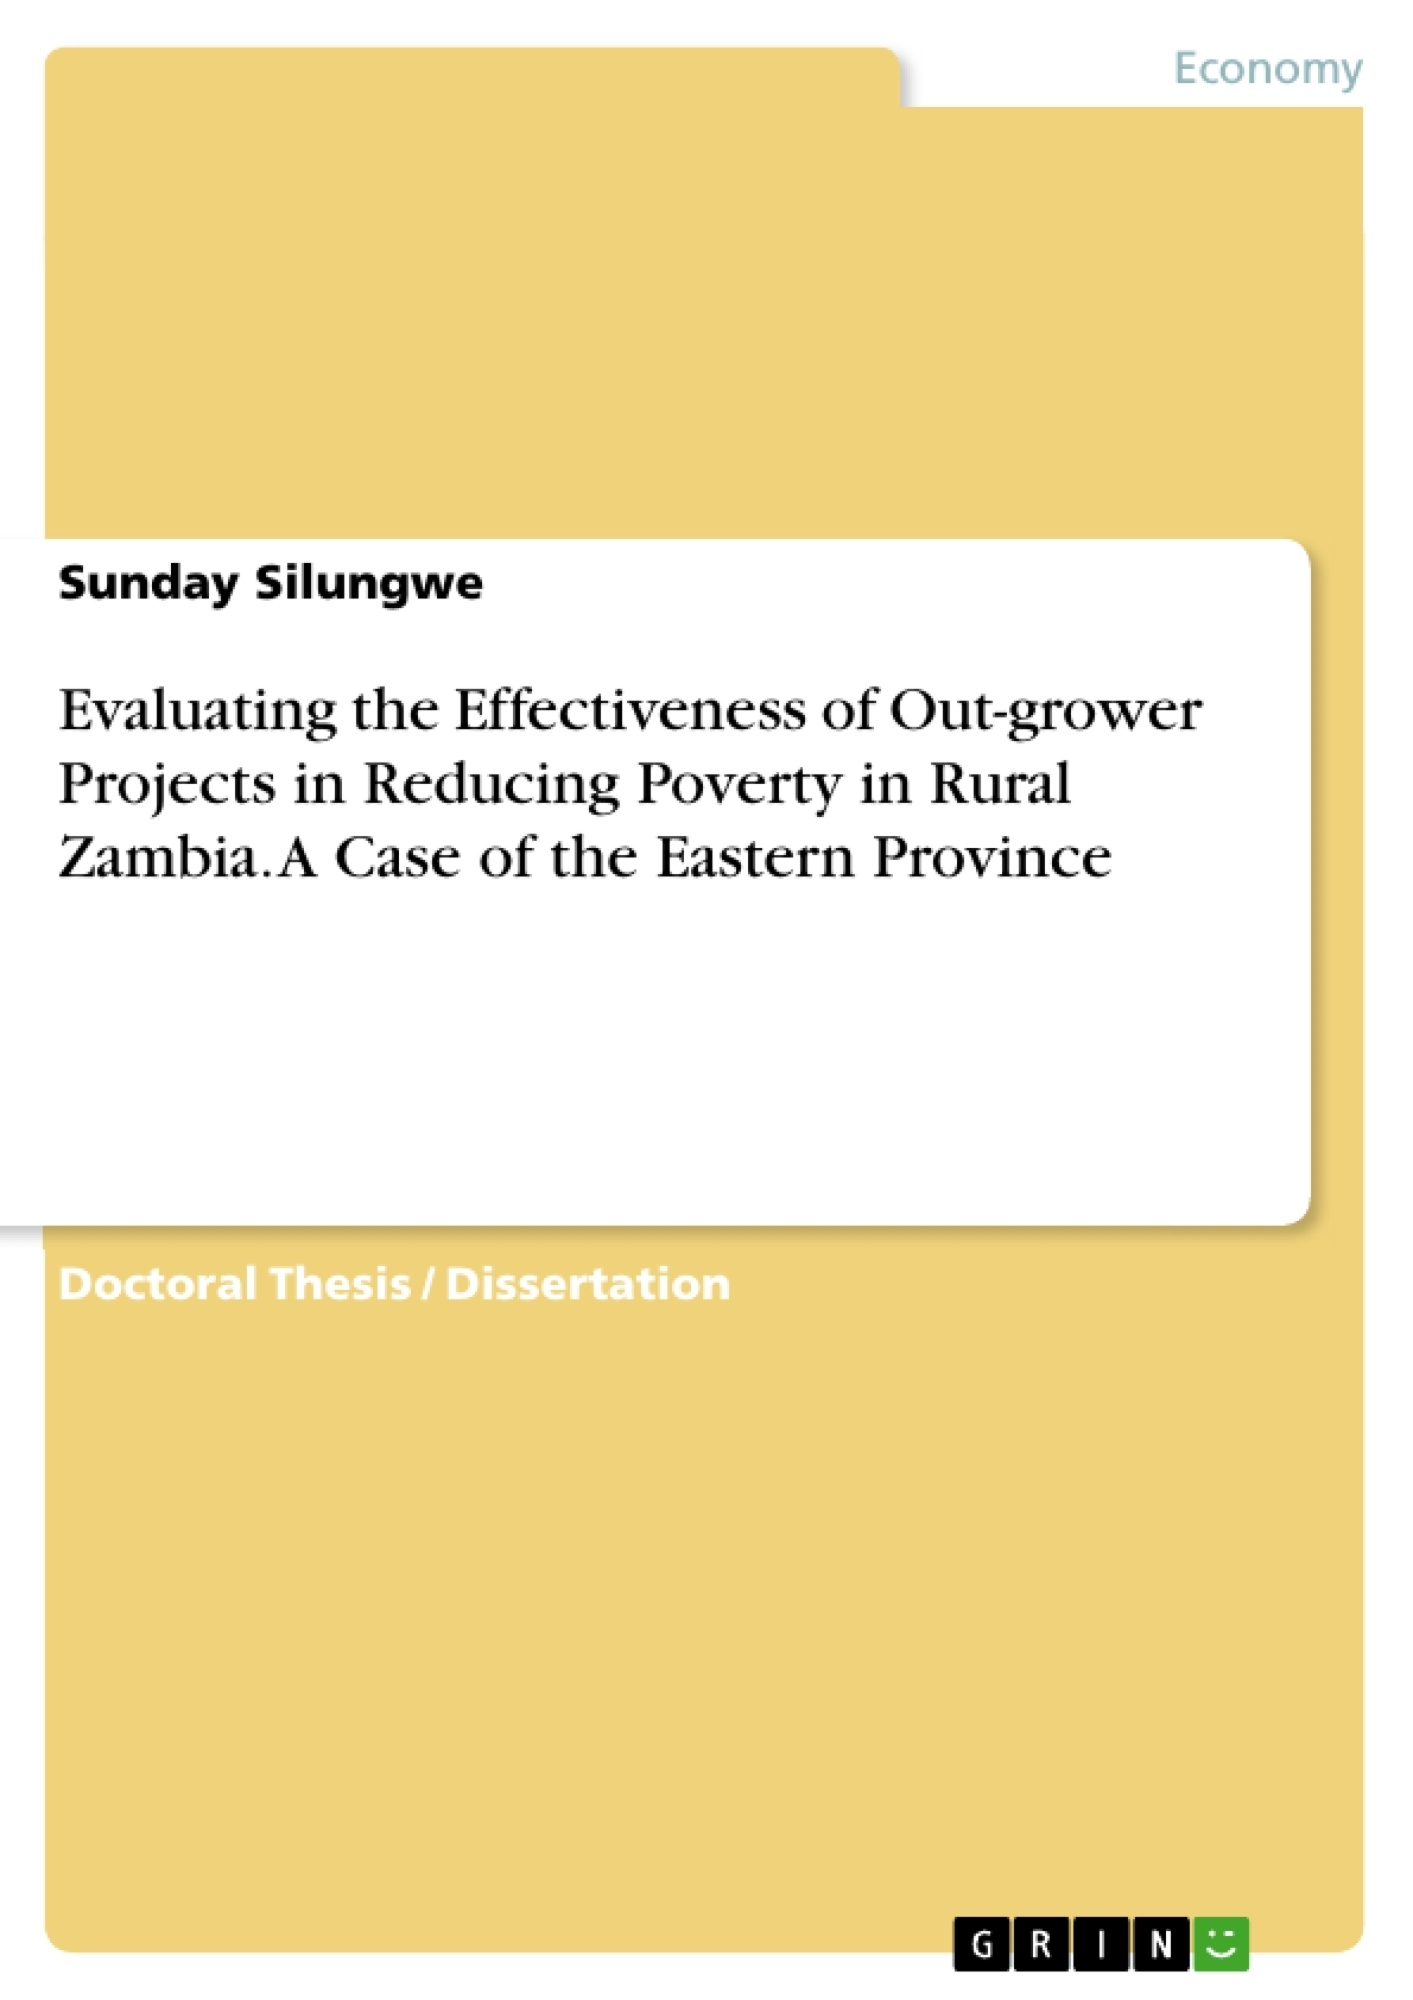 Title: Evaluating the Effectiveness of Out-grower Projects in Reducing Poverty in Rural Zambia. A Case of the Eastern Province